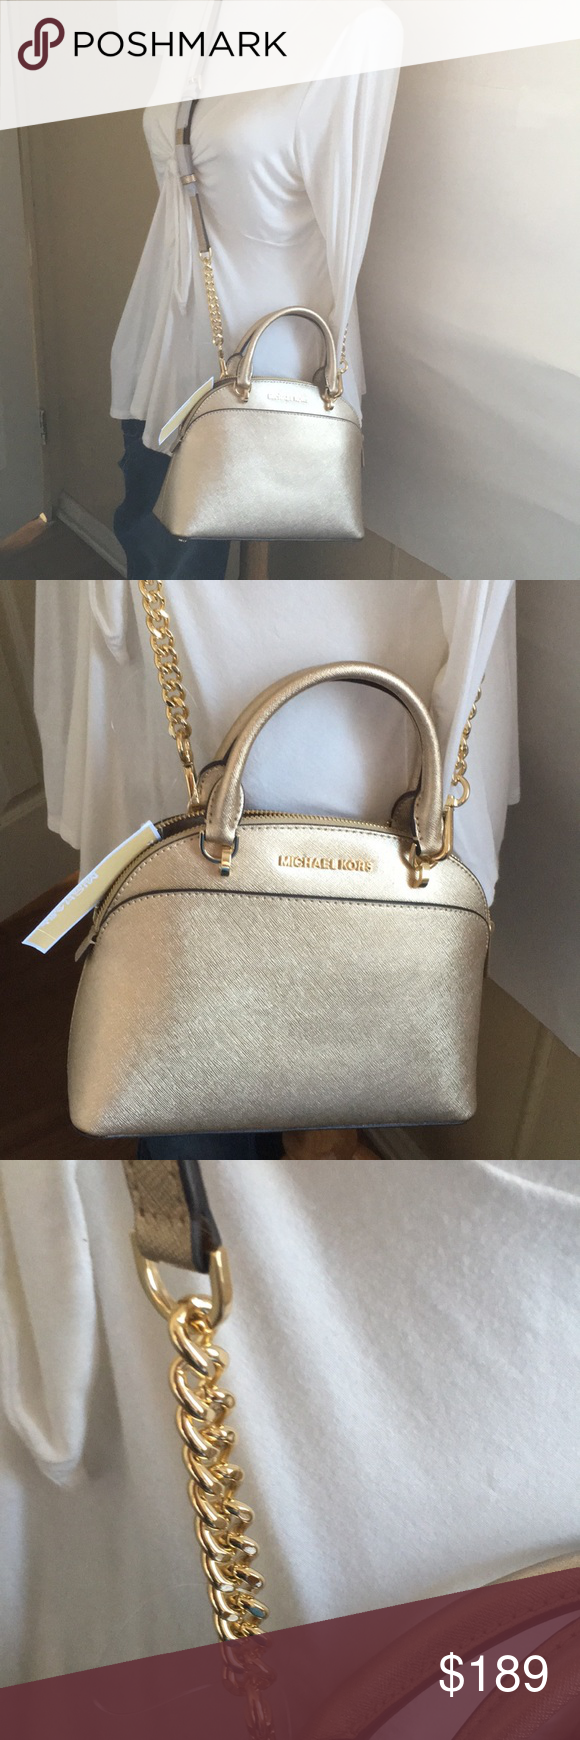 b74d2065539d Michael kors Emmy small dome satchel Brand new satchel bag Color: pale gold  Leather Shoulder long strap Measurements: 10